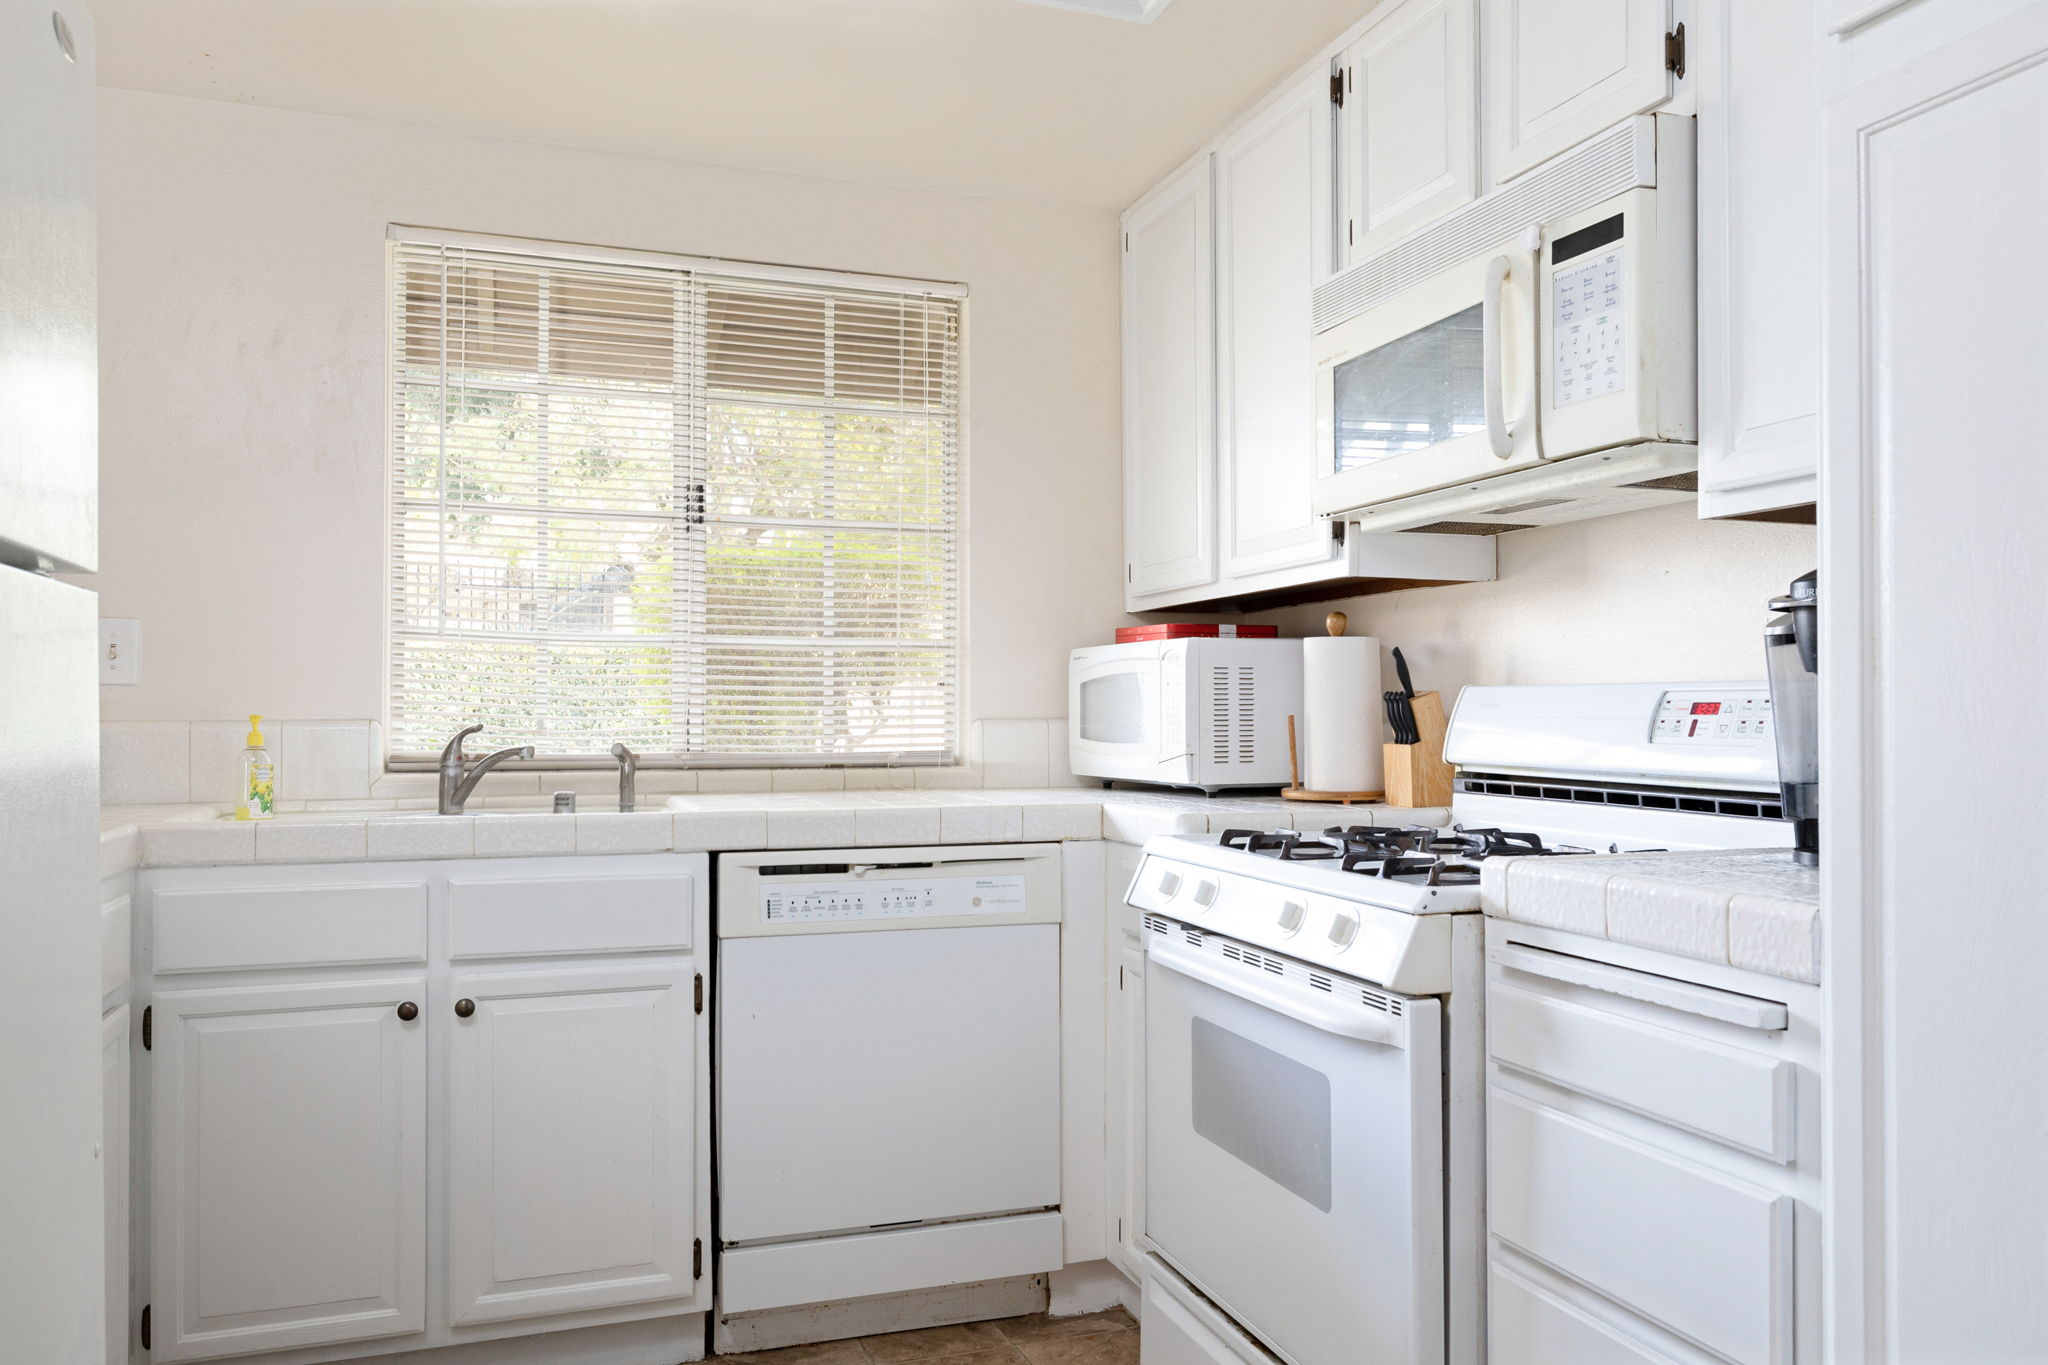 Newly painted cabinets in sparkling kitchen